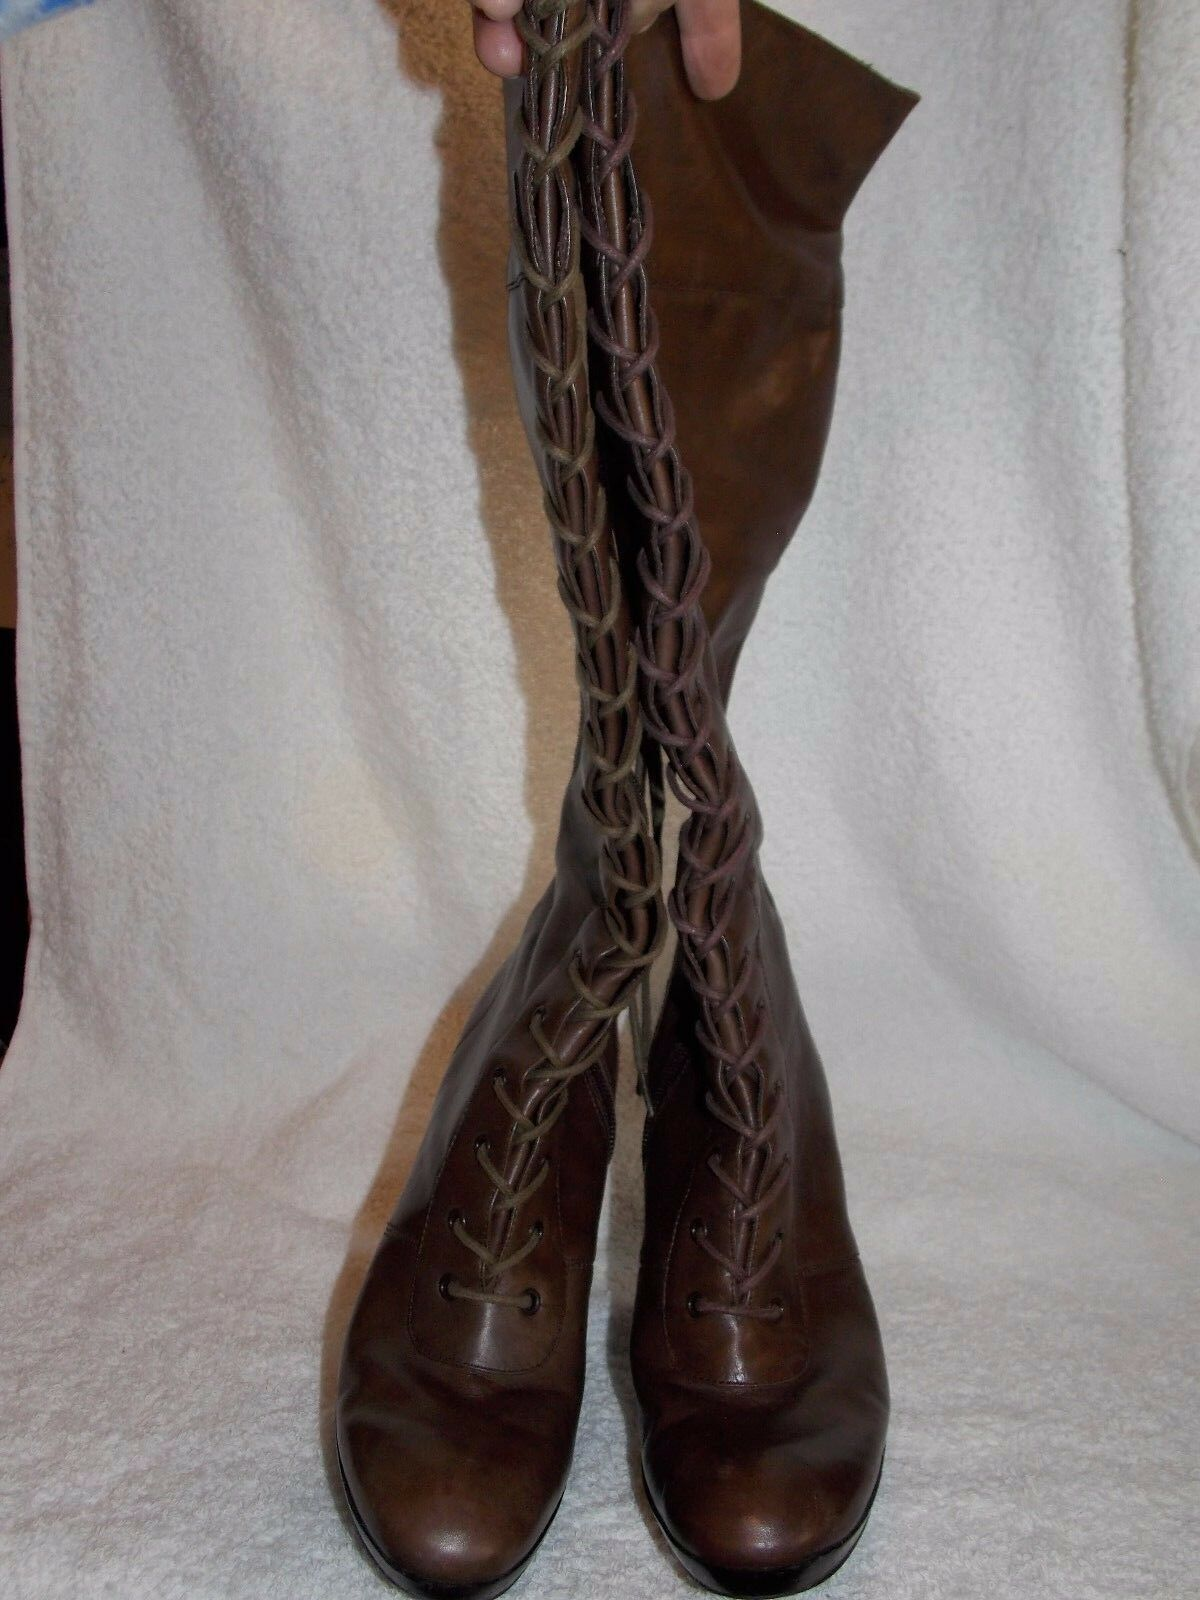 Nine West West West Brown Leather Lace Zipper Knee High Boots 6.5M Used de348b